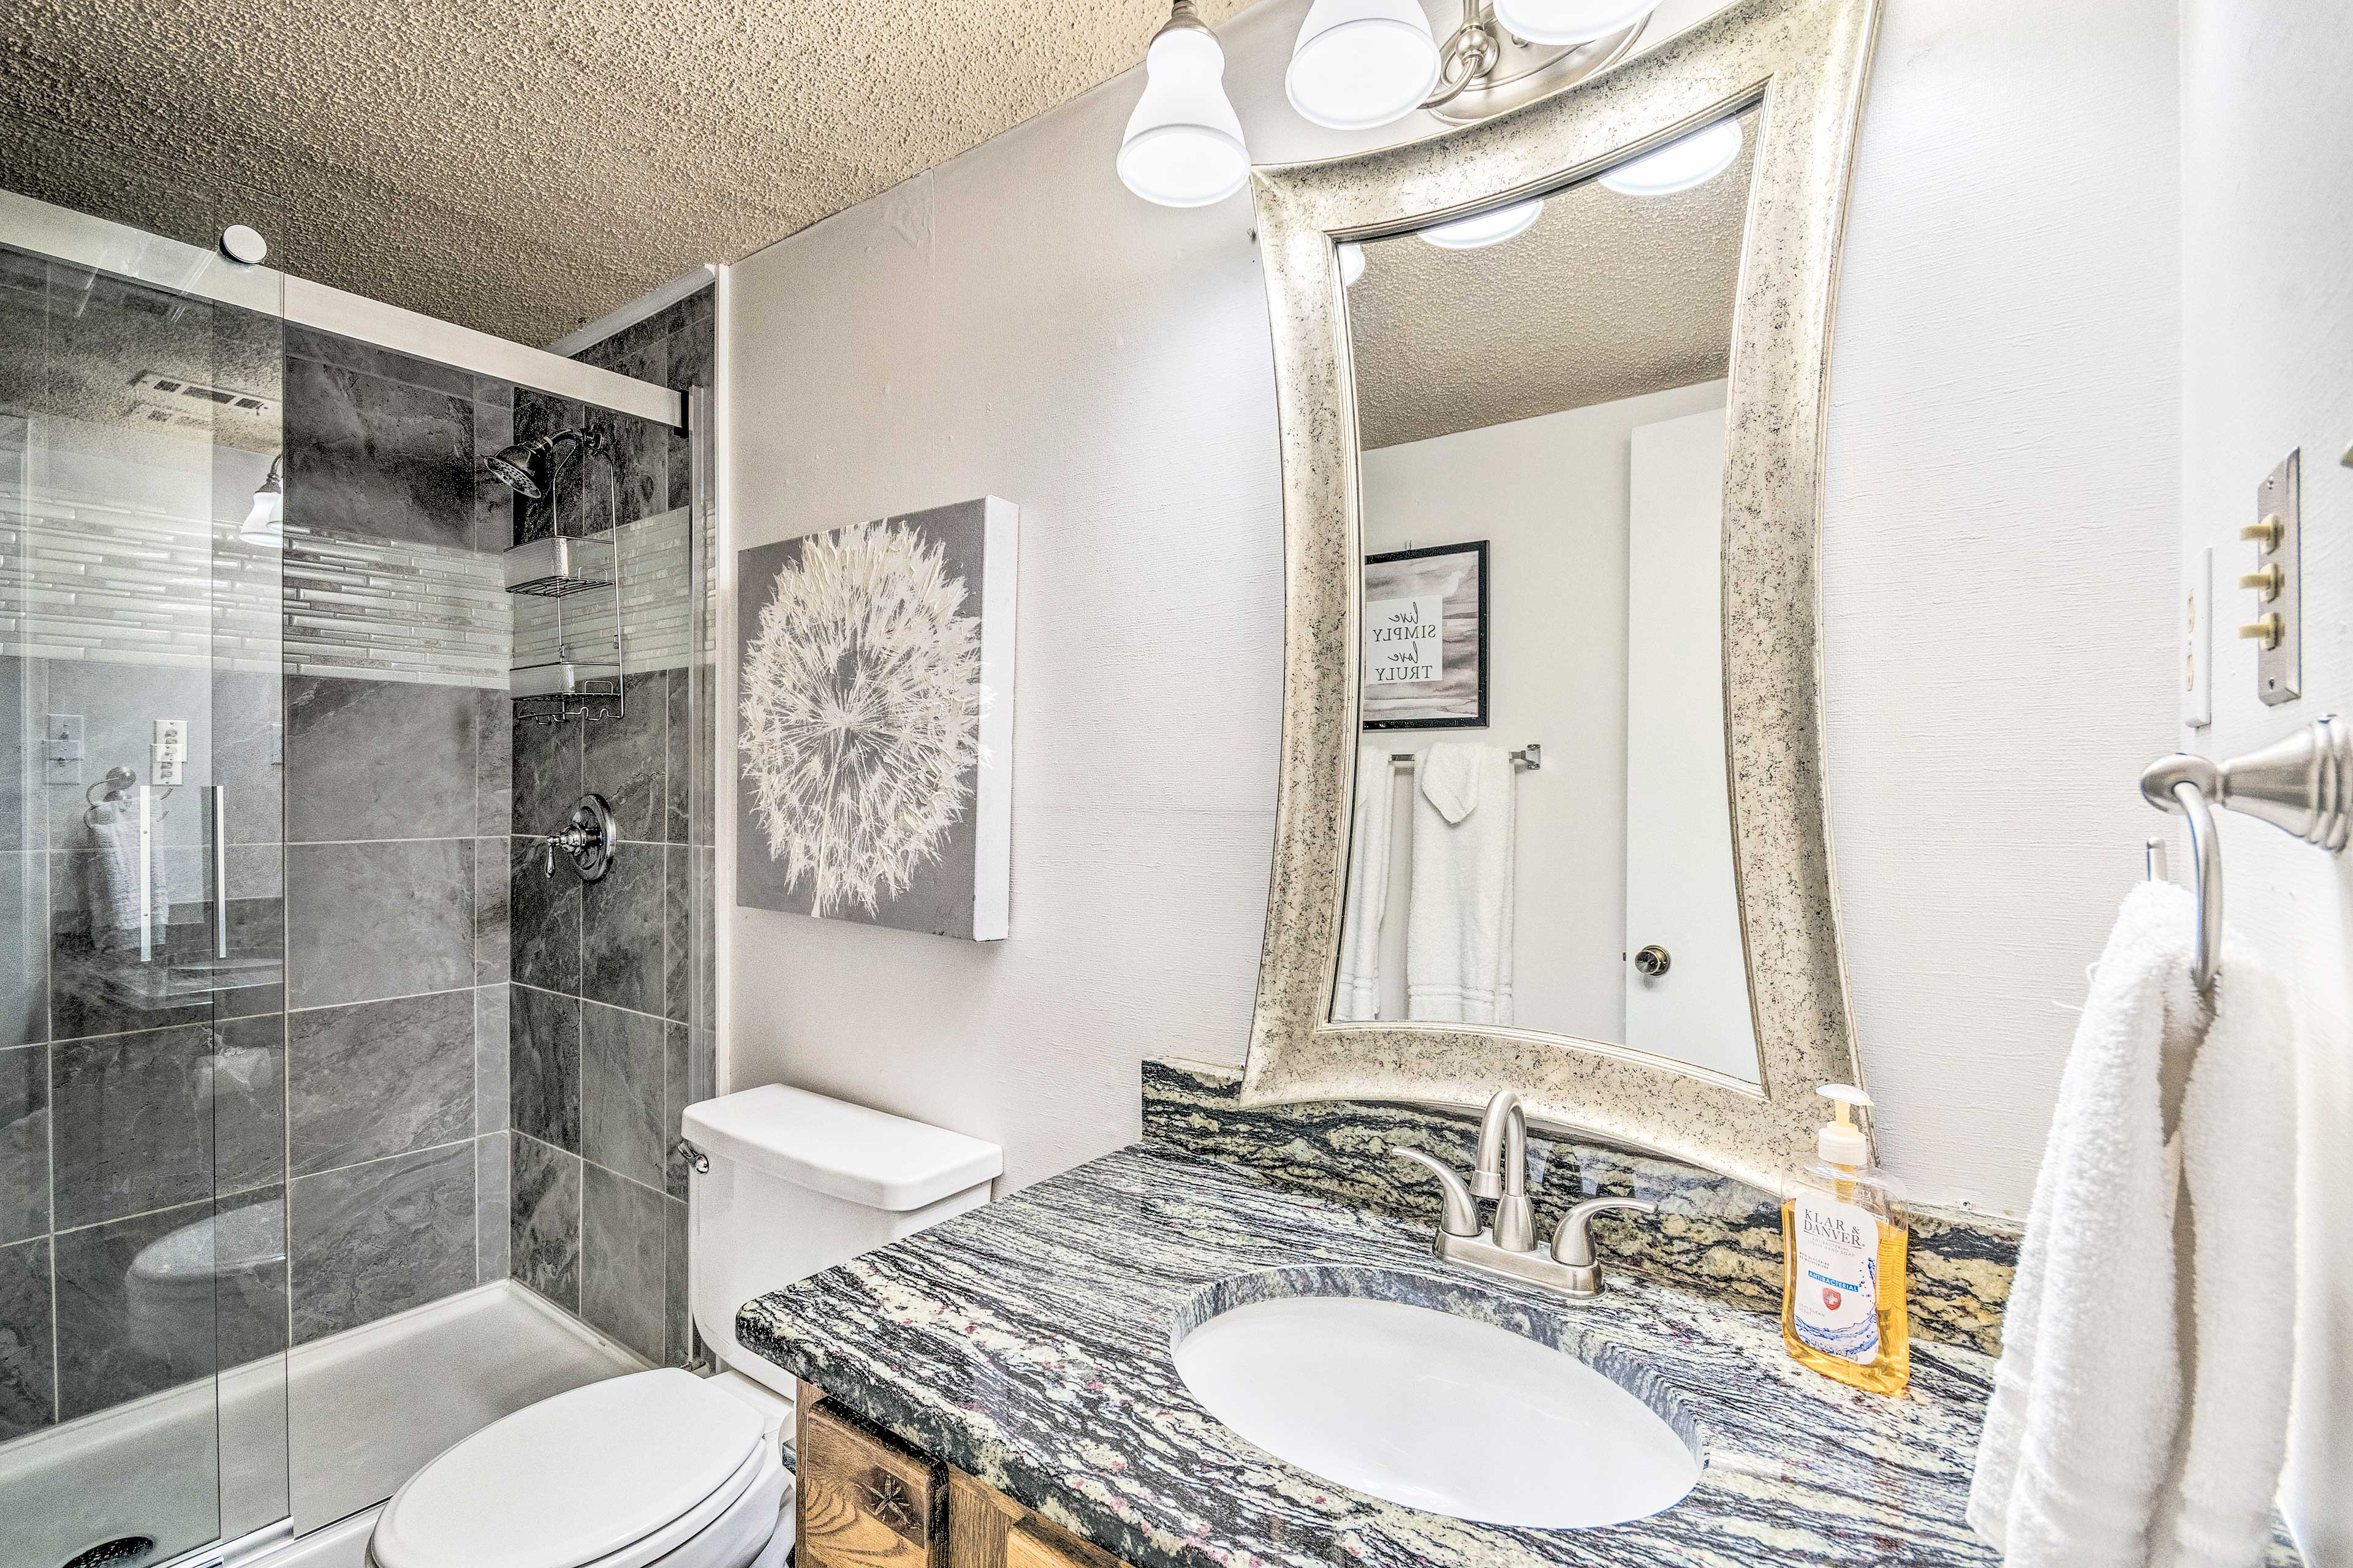 Rinse and refresh in the walk-in shower!